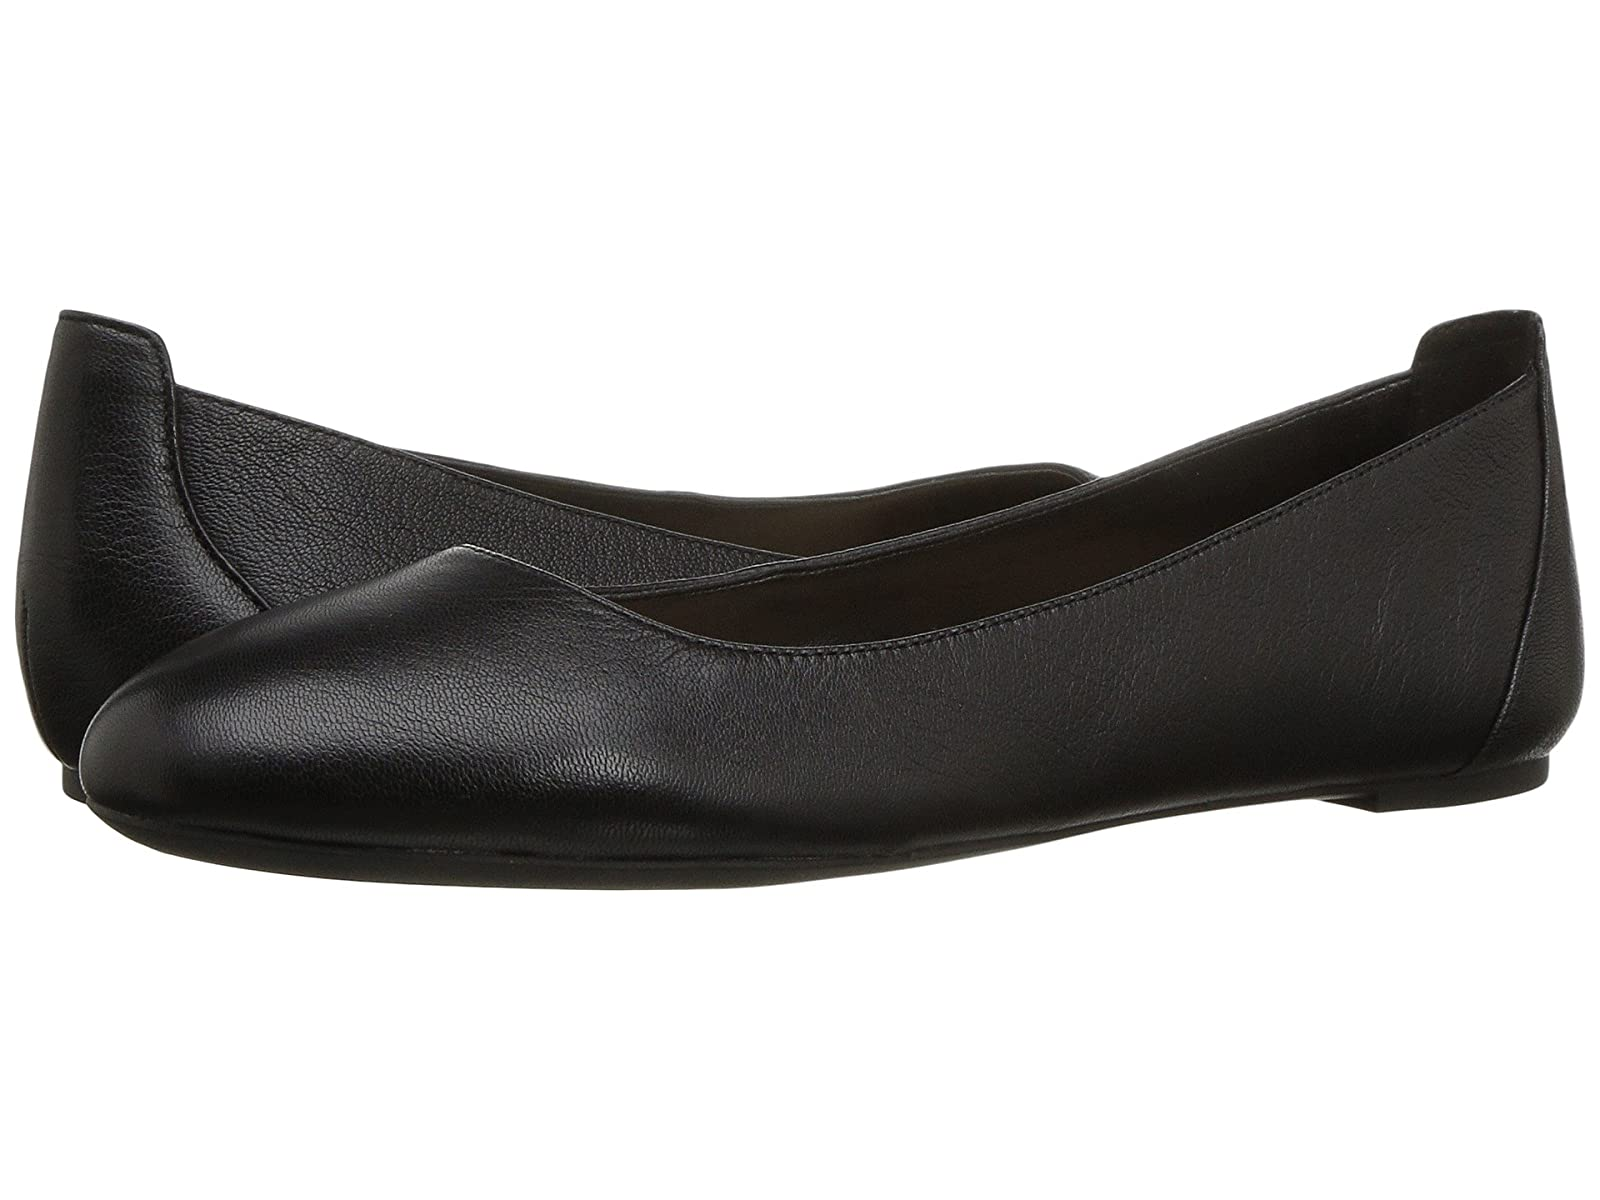 Nine West McgrathCheap and distinctive eye-catching shoes